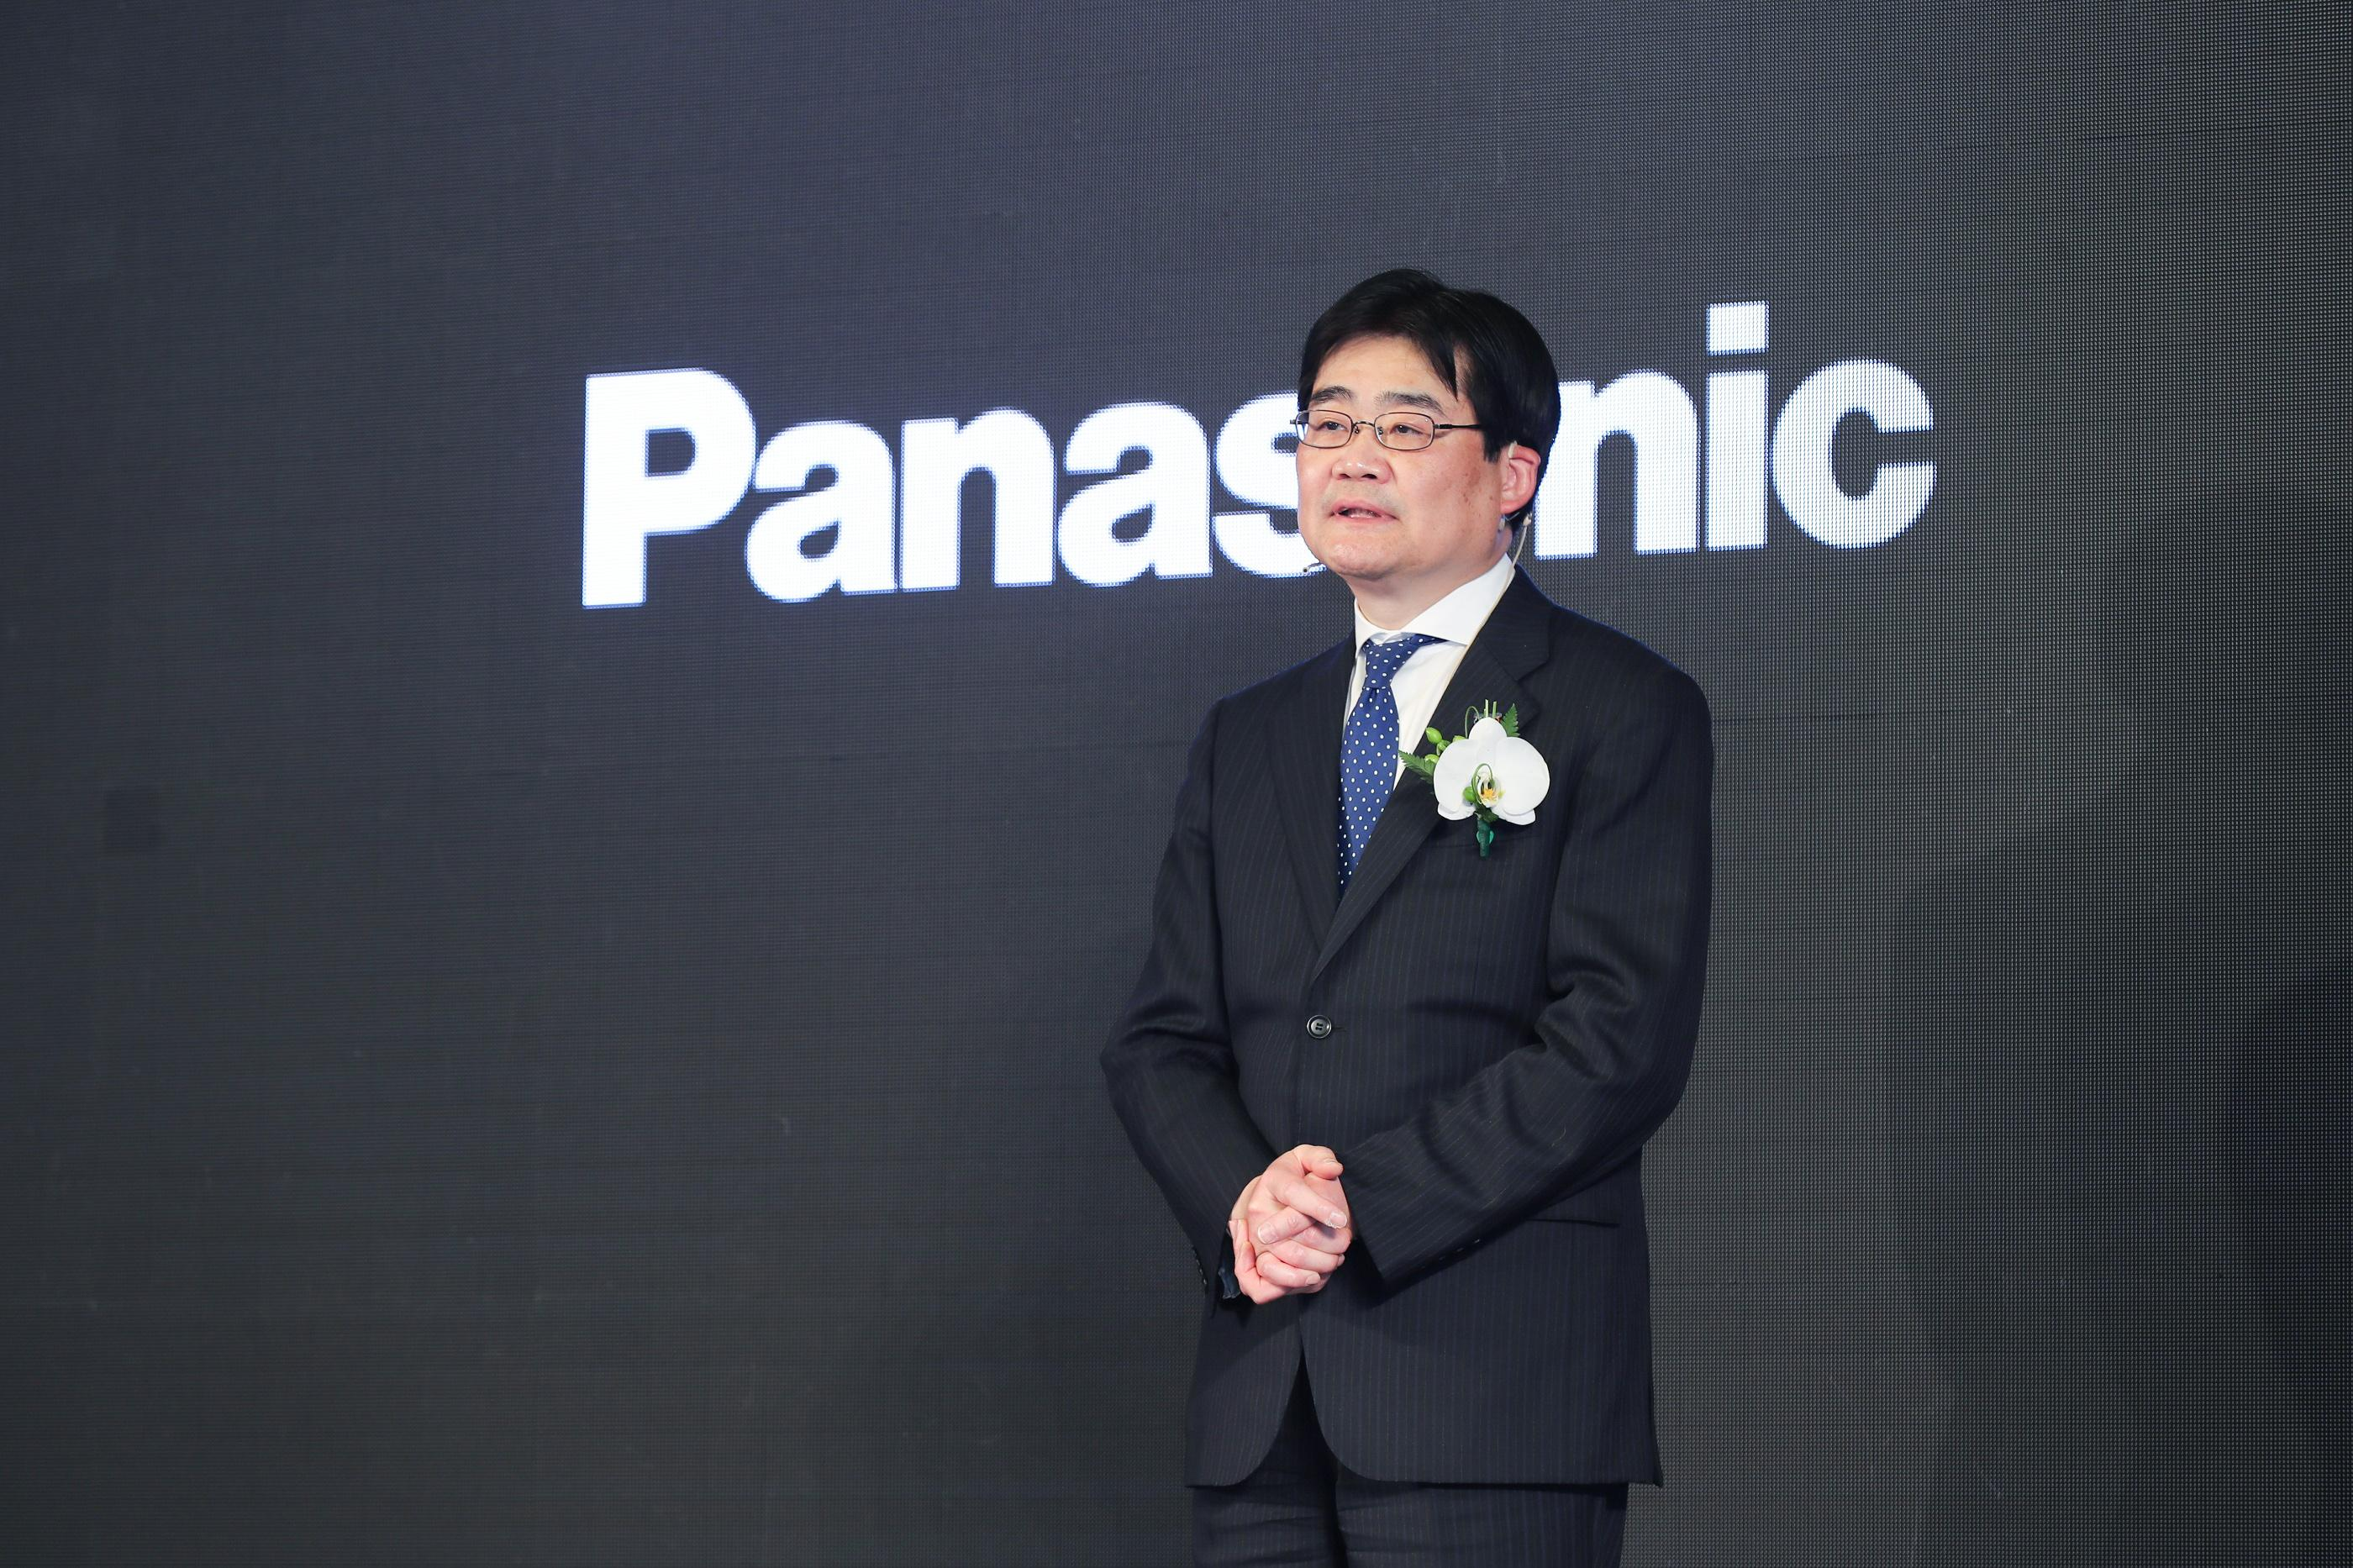 photo: Tetsuro Homma, Senior Managing Executive Officer of Panasonic Corporation and CEO of Appliances Company at the press conference at AWE 2019